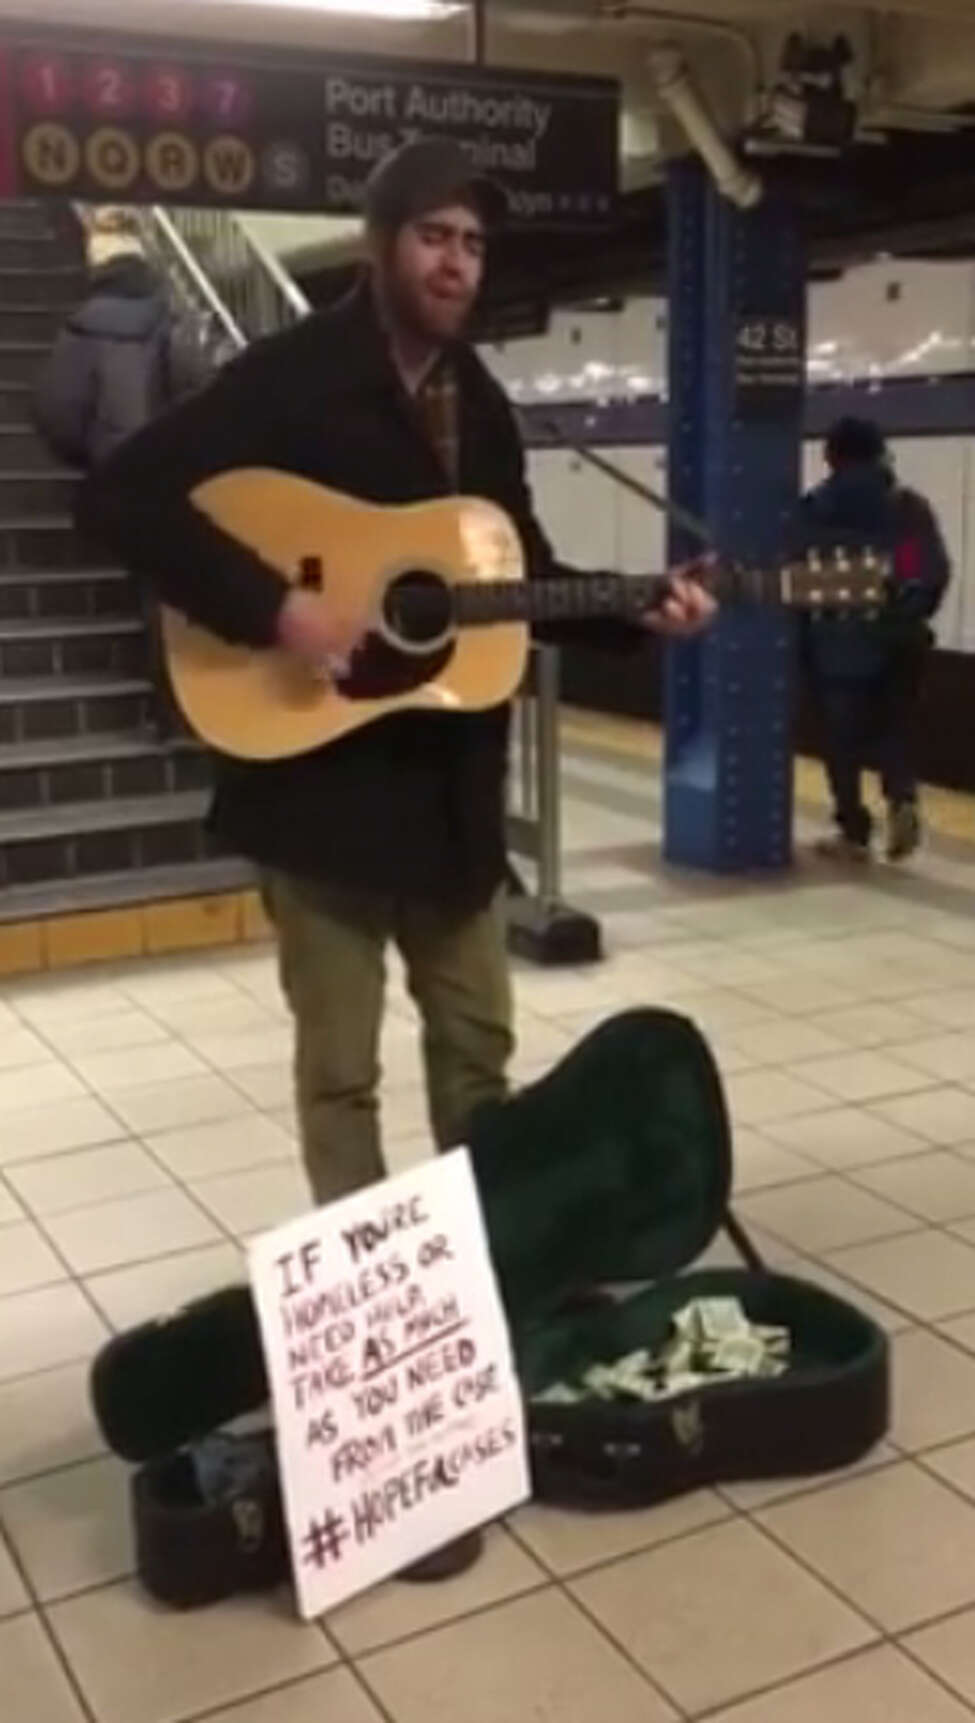 Screen grab from a video of Clifton Park native Will Boyajian performing in the 42nd Street-Times Square subway station in Manhattan as part of his #HopefulCases campaign to raise money for the homless in New York City. (Photo courtesy Will Boyajian.)